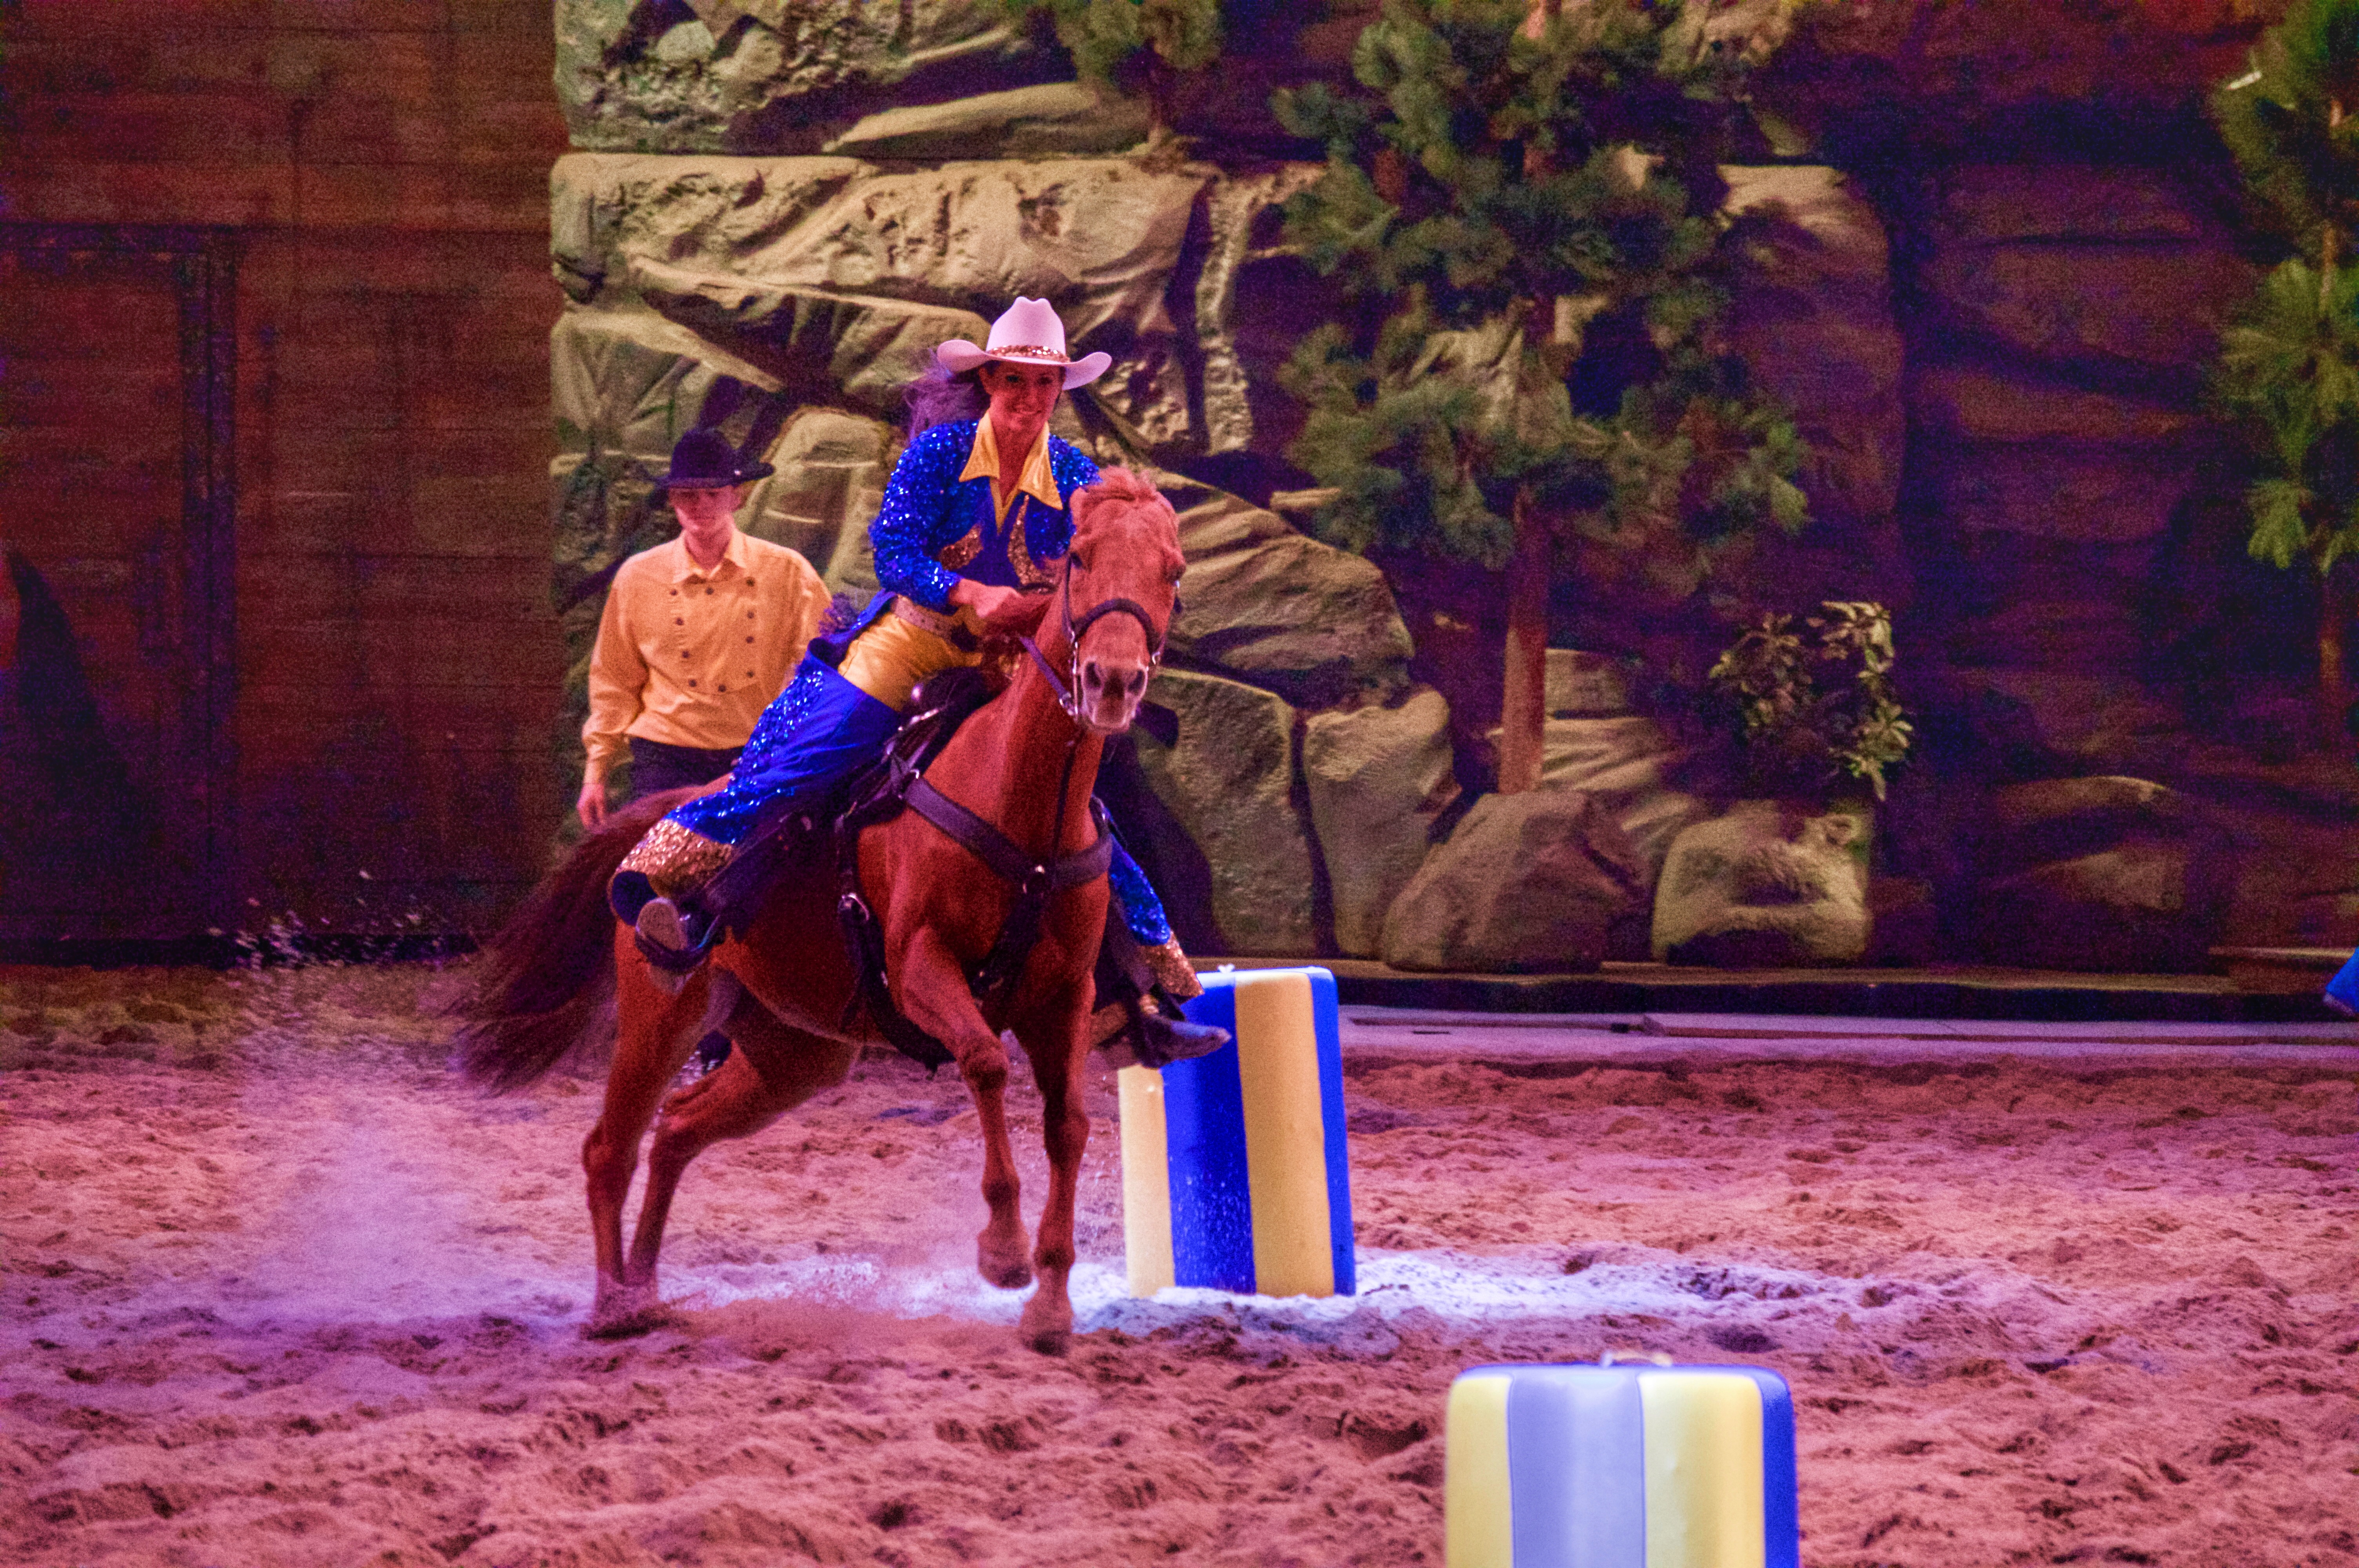 Barrel racing at Dolly Parton's Stampede